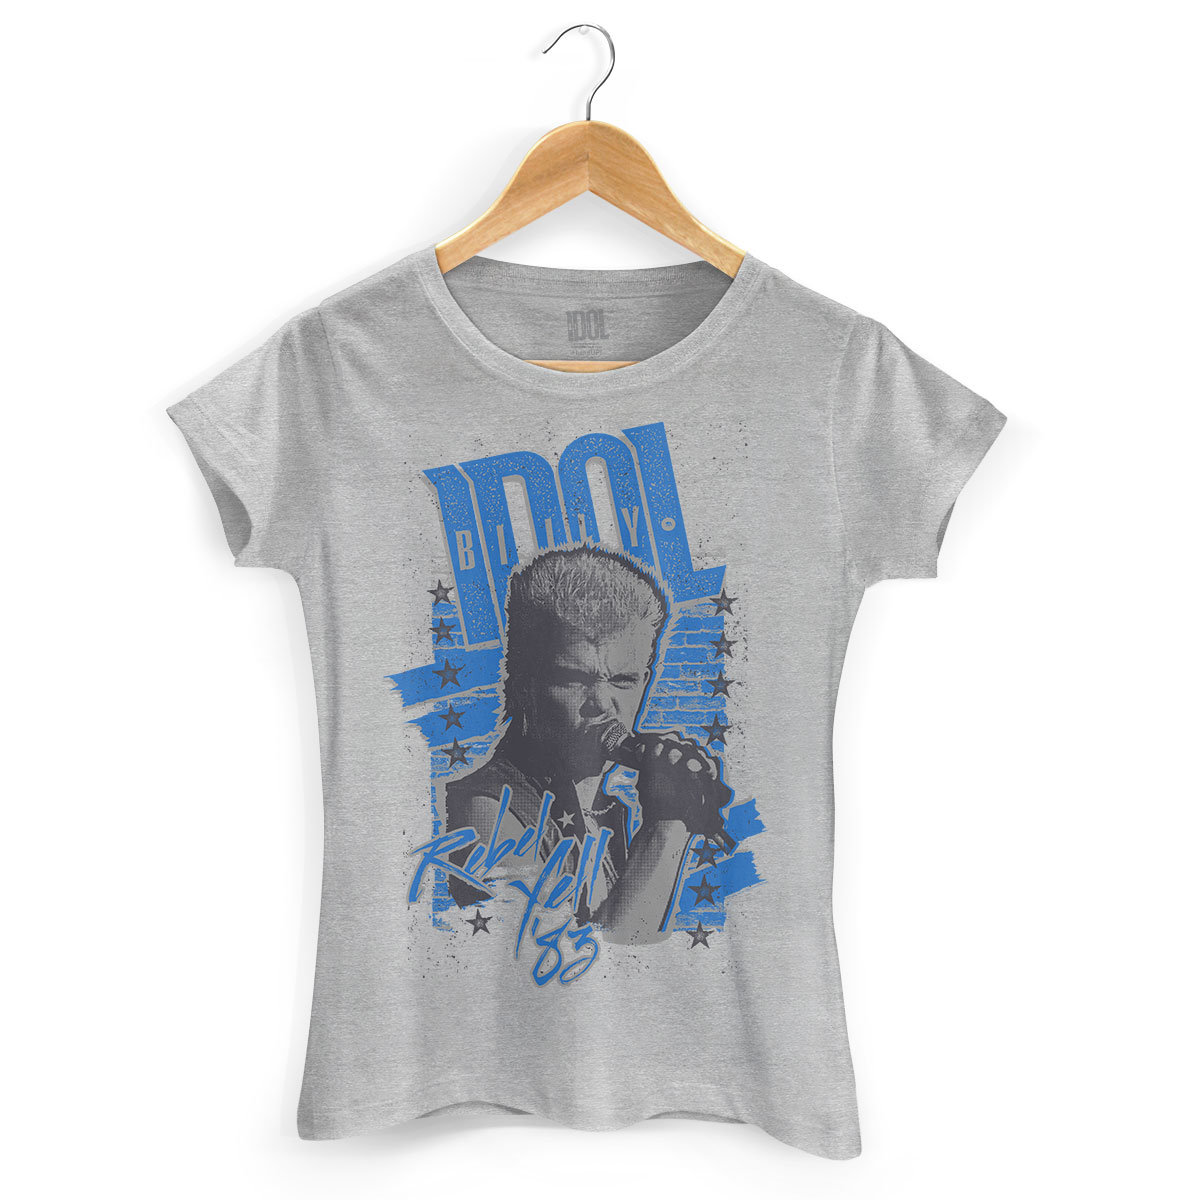 Camiseta Feminina Billy Idol Rebel Yell Face